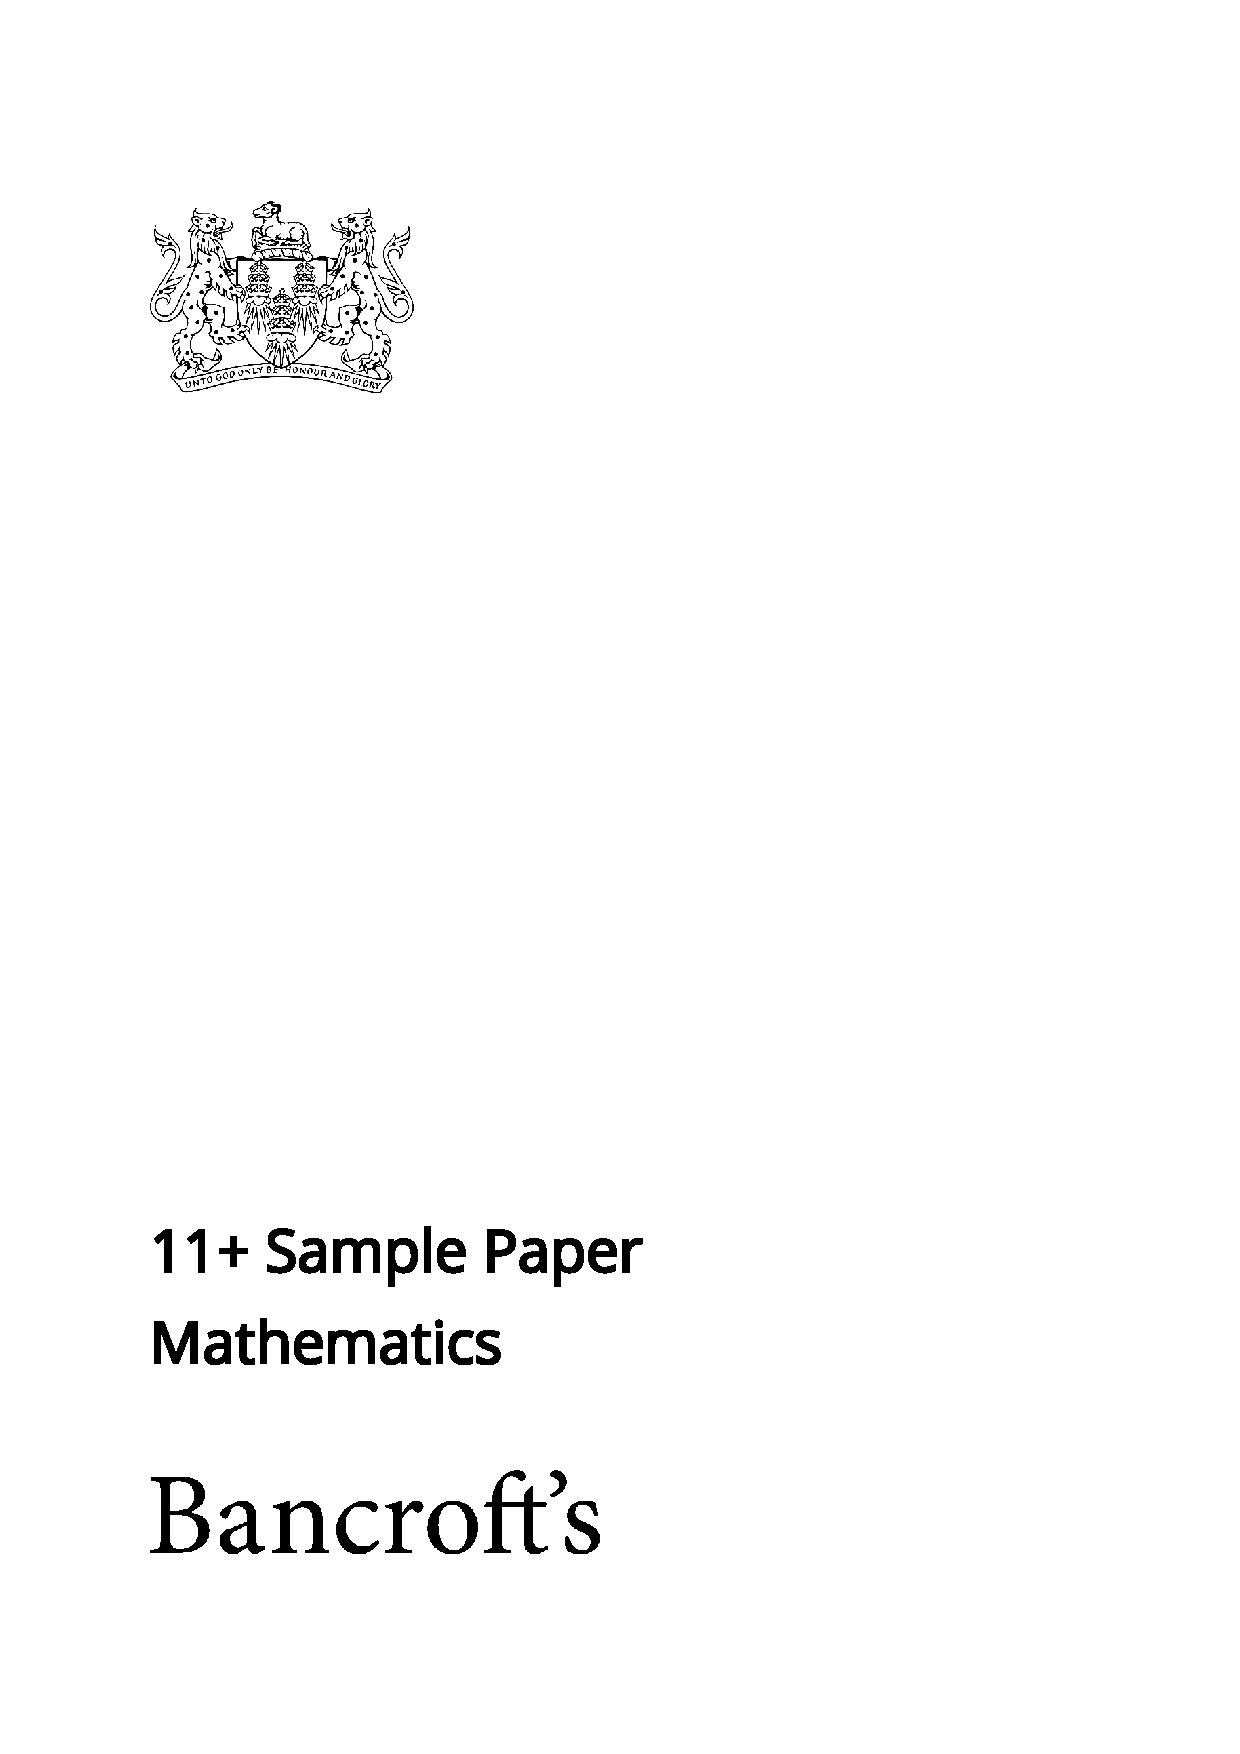 Bancrofts School 11 Plus Maths Sample Paper 2021 entry2 Answer Paper 1 page 001 1